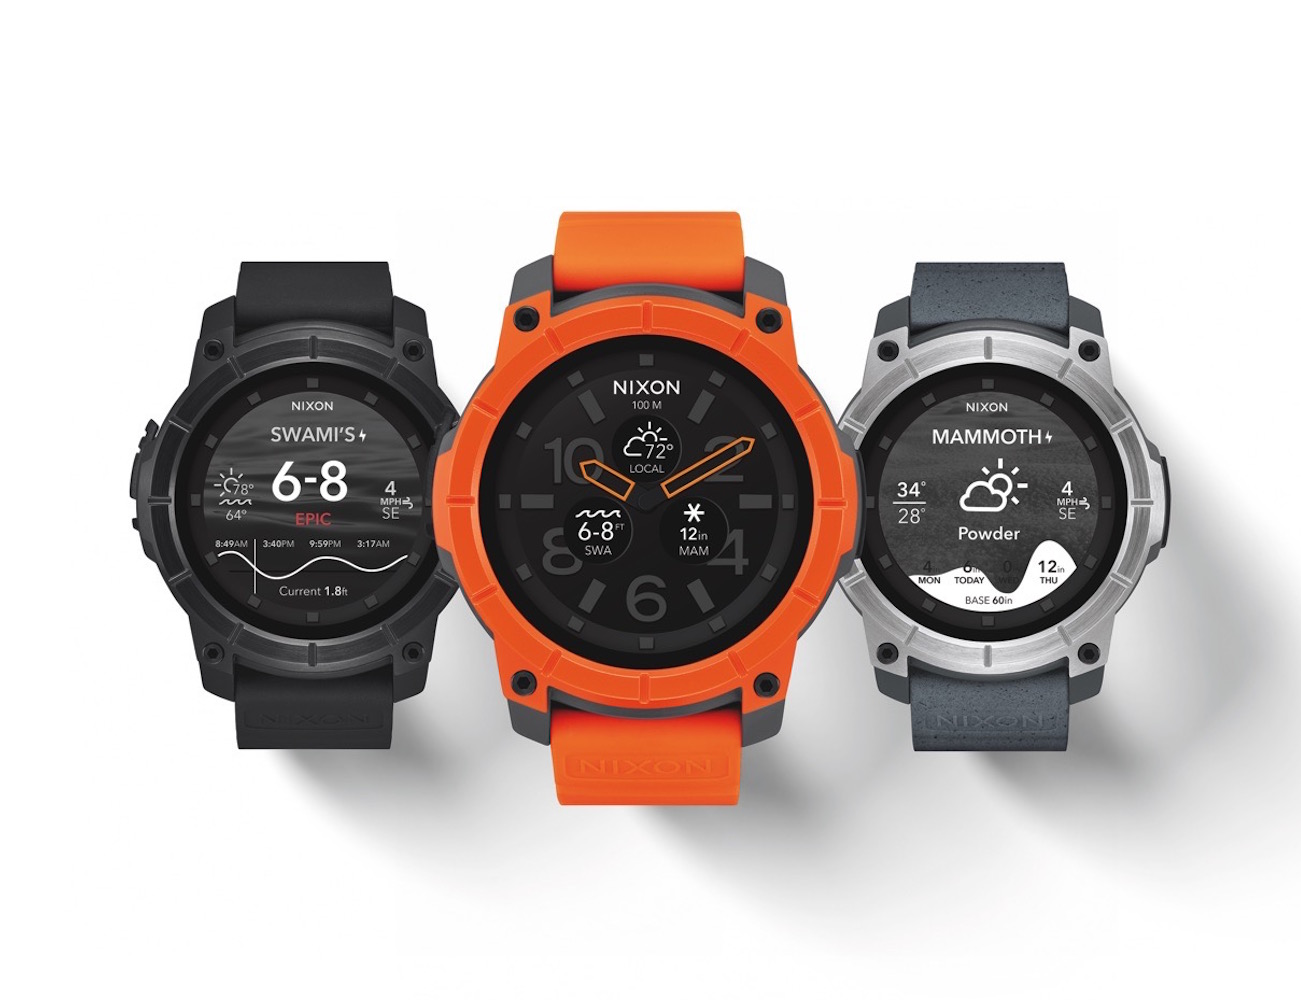 The Mission Smartwatch by Nixon